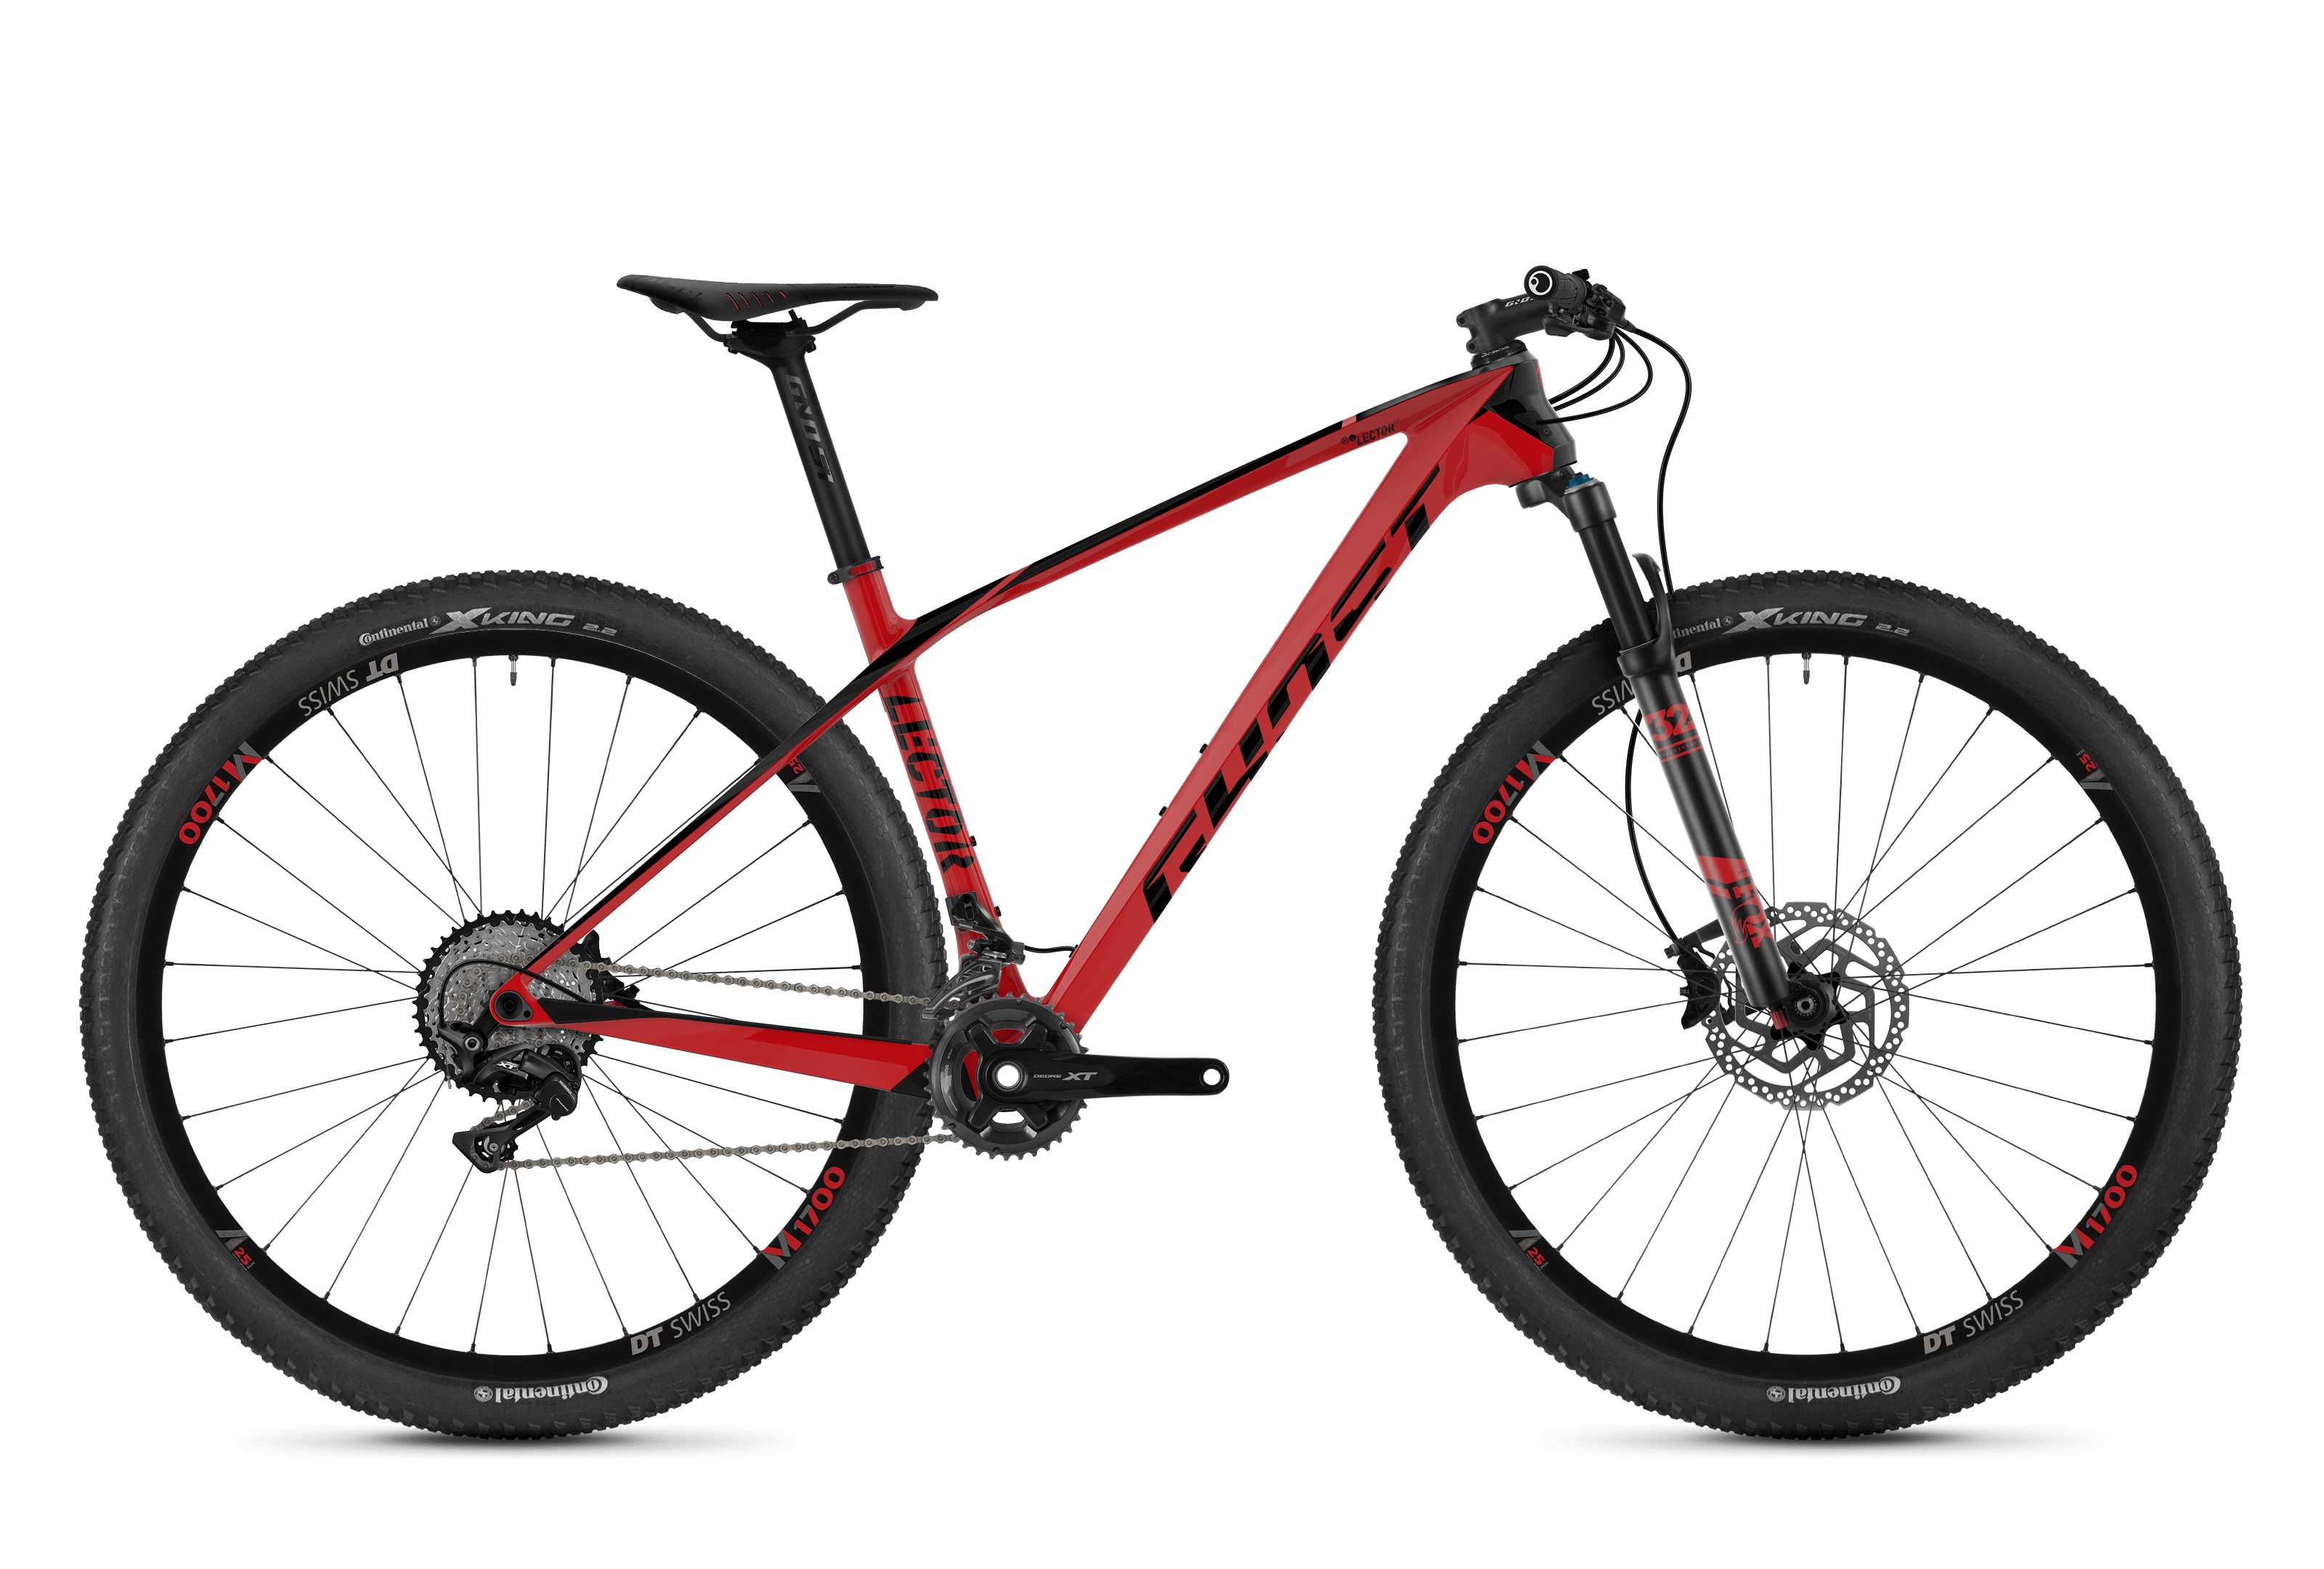 Horské kolo GHOST Lector 6.9 LC red / black S 2018